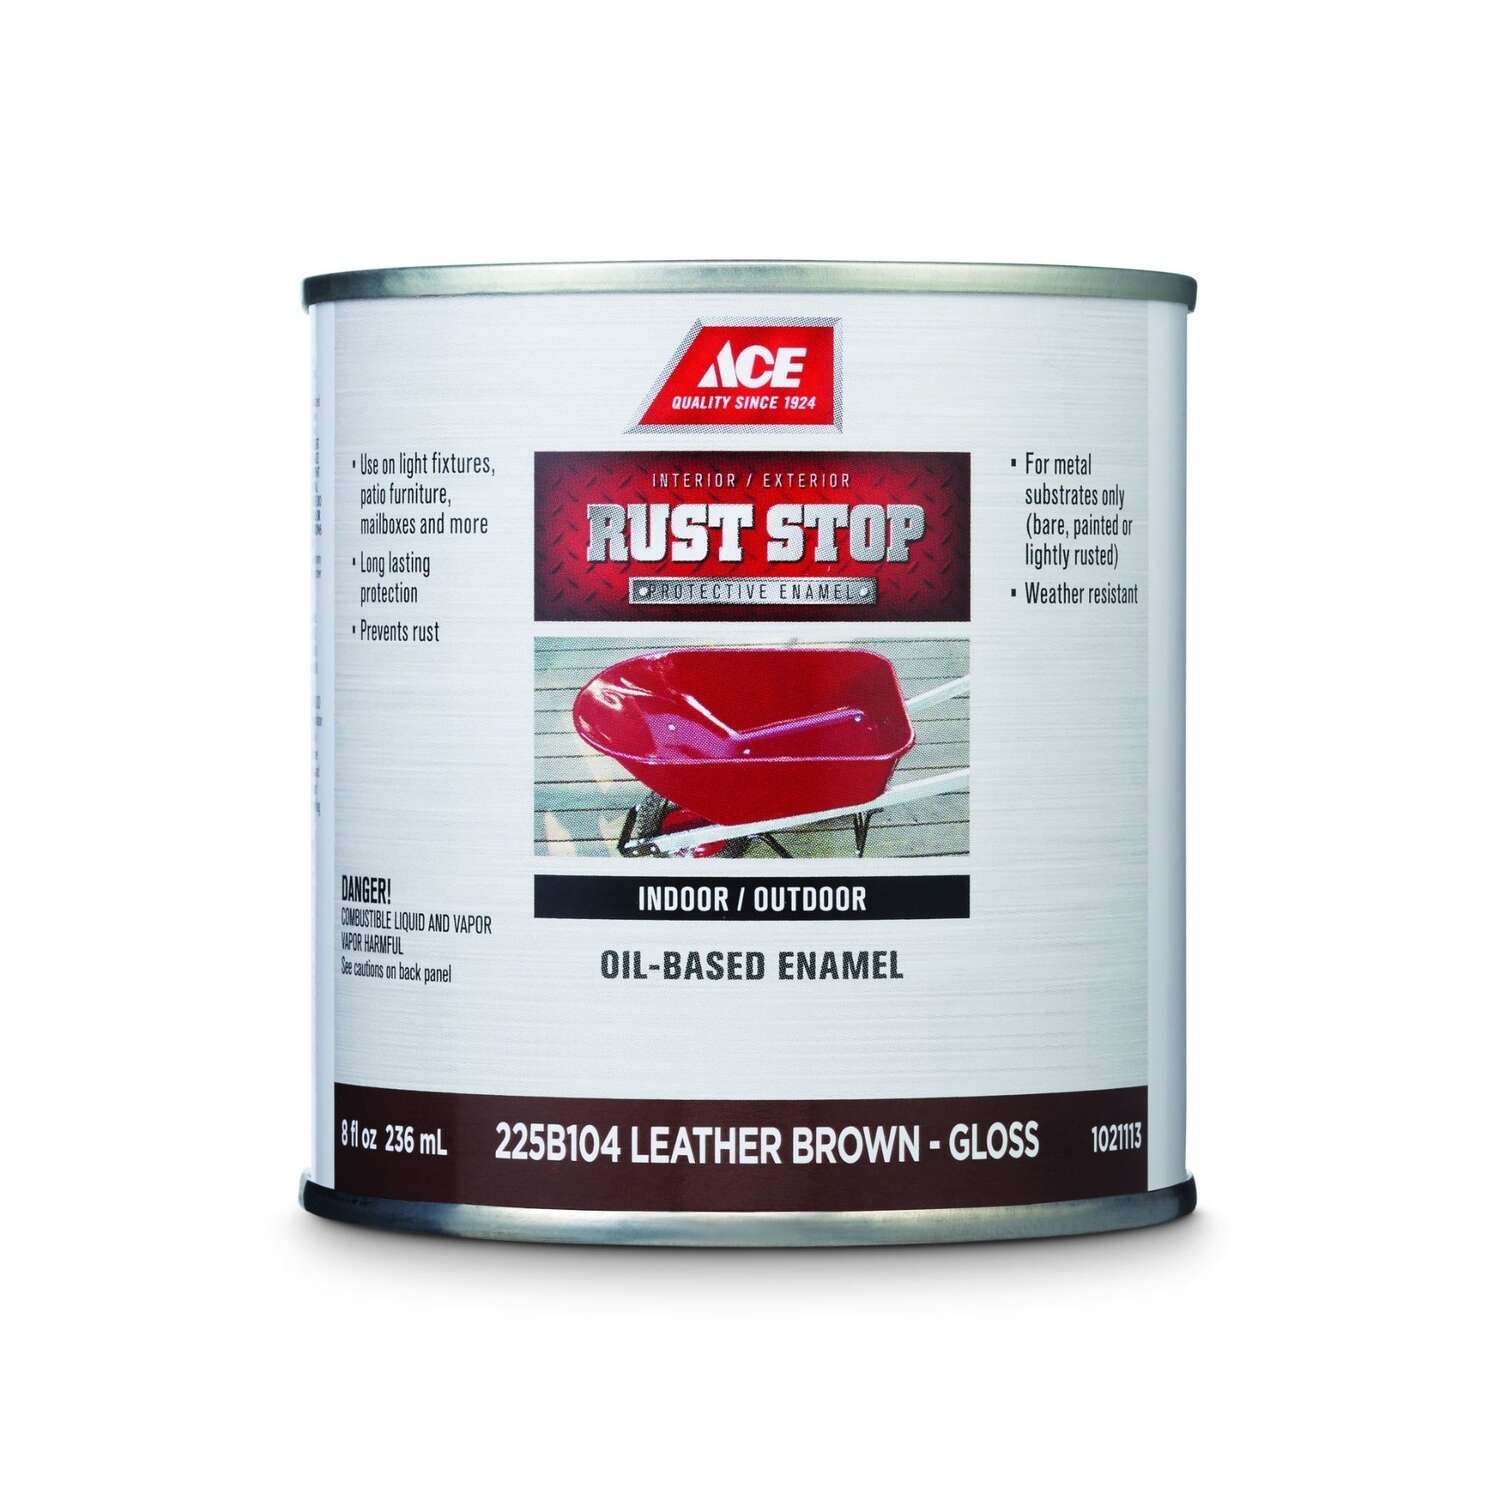 Ace  Rust Stop  Indoor / Outdoor  Leather Brown  Oil-Based Enamel  Rust Preventative Paint  1/2 pt.